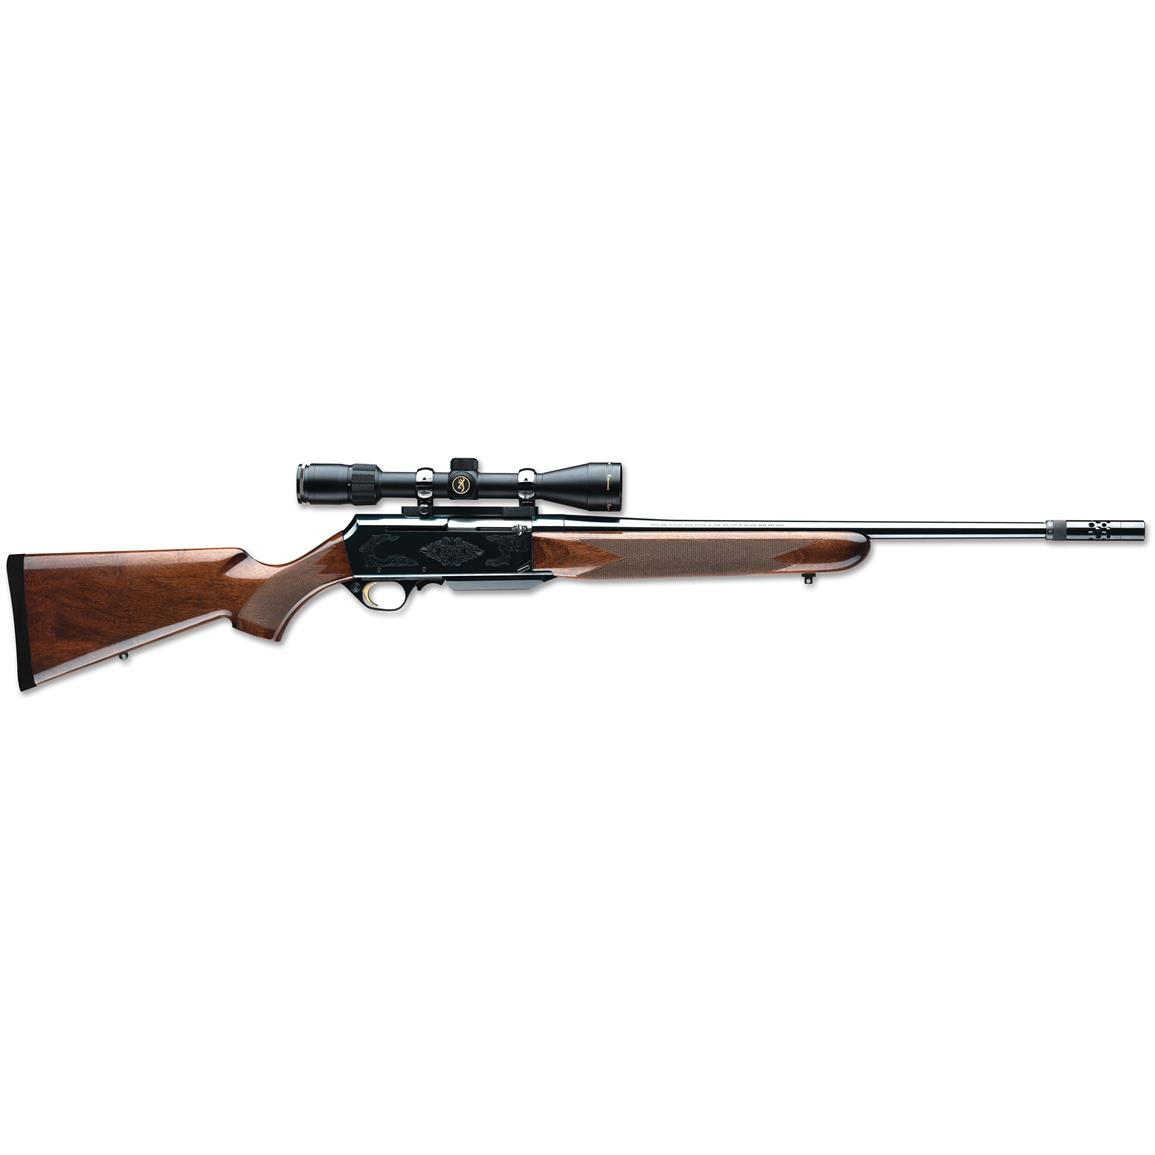 Browning BAR Mark II Safari, Semi-automatic, .338 Winchester Magnum, Centerfire, 031001331, 023614063175, 24 inch Barrel